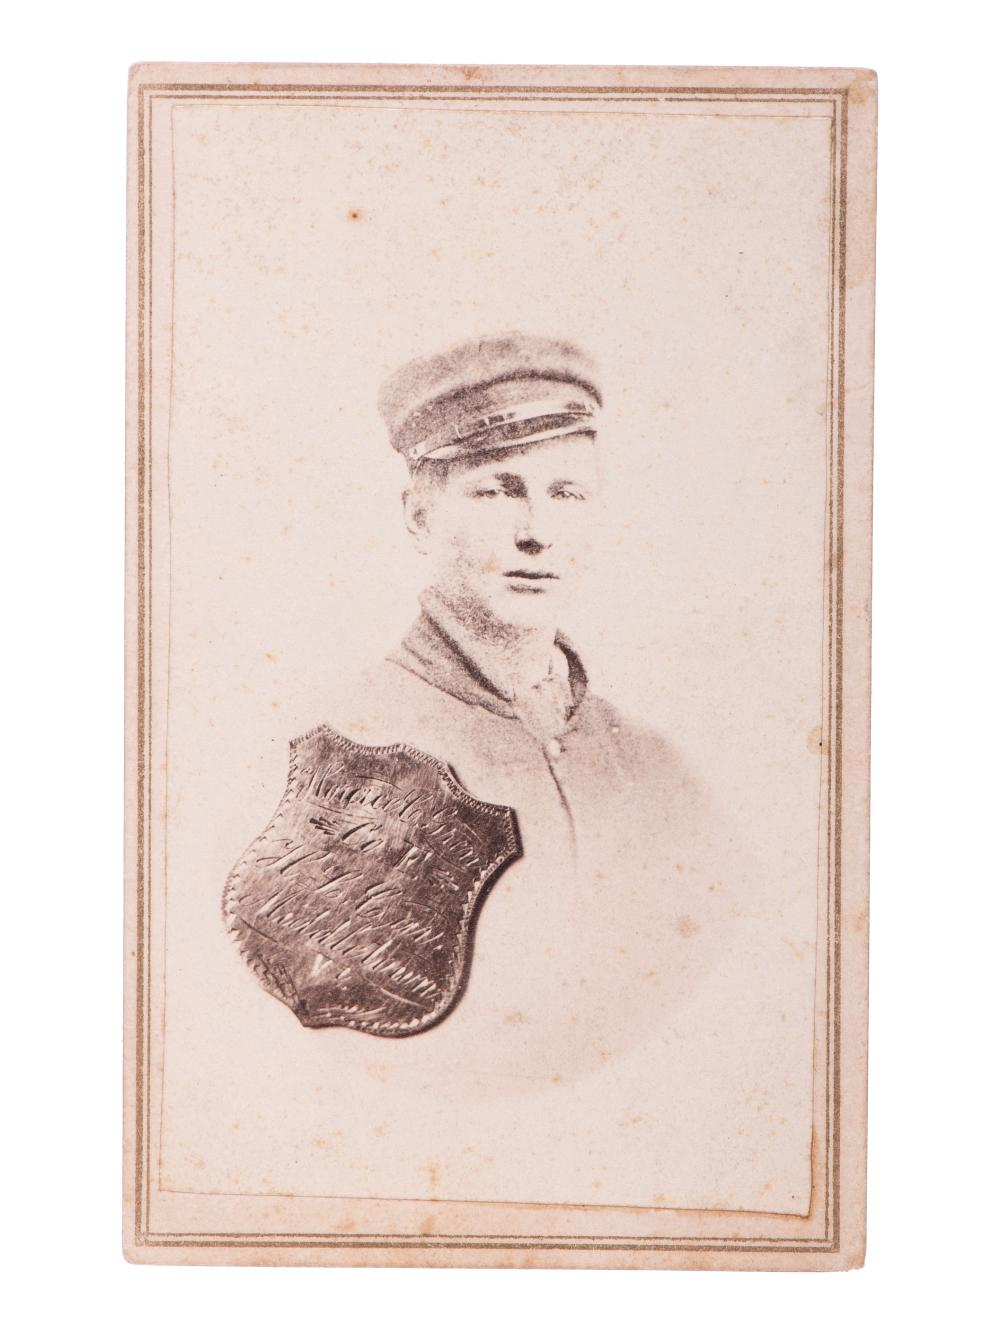 """SHELL, J.H., photographer. CDV portrait of Private Horace C. Green, 2nd New York Cavalry, """"Harris Light Cavalry,"""" with superimposed ID shield. Findlay, OH: [ca 1860s]."""